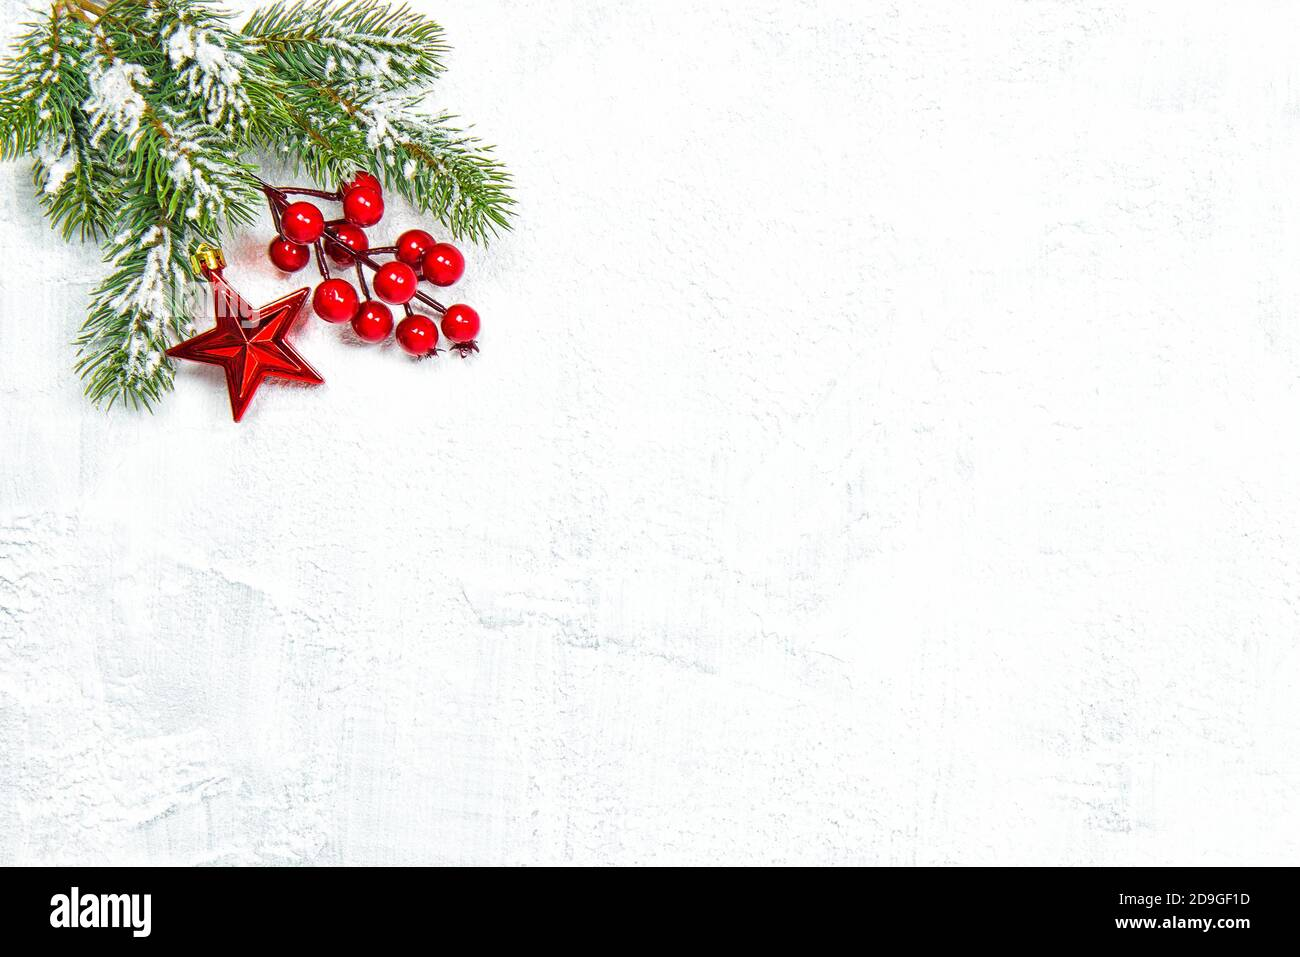 Christmas decoration and pine tree branches on bright background Stock Photo